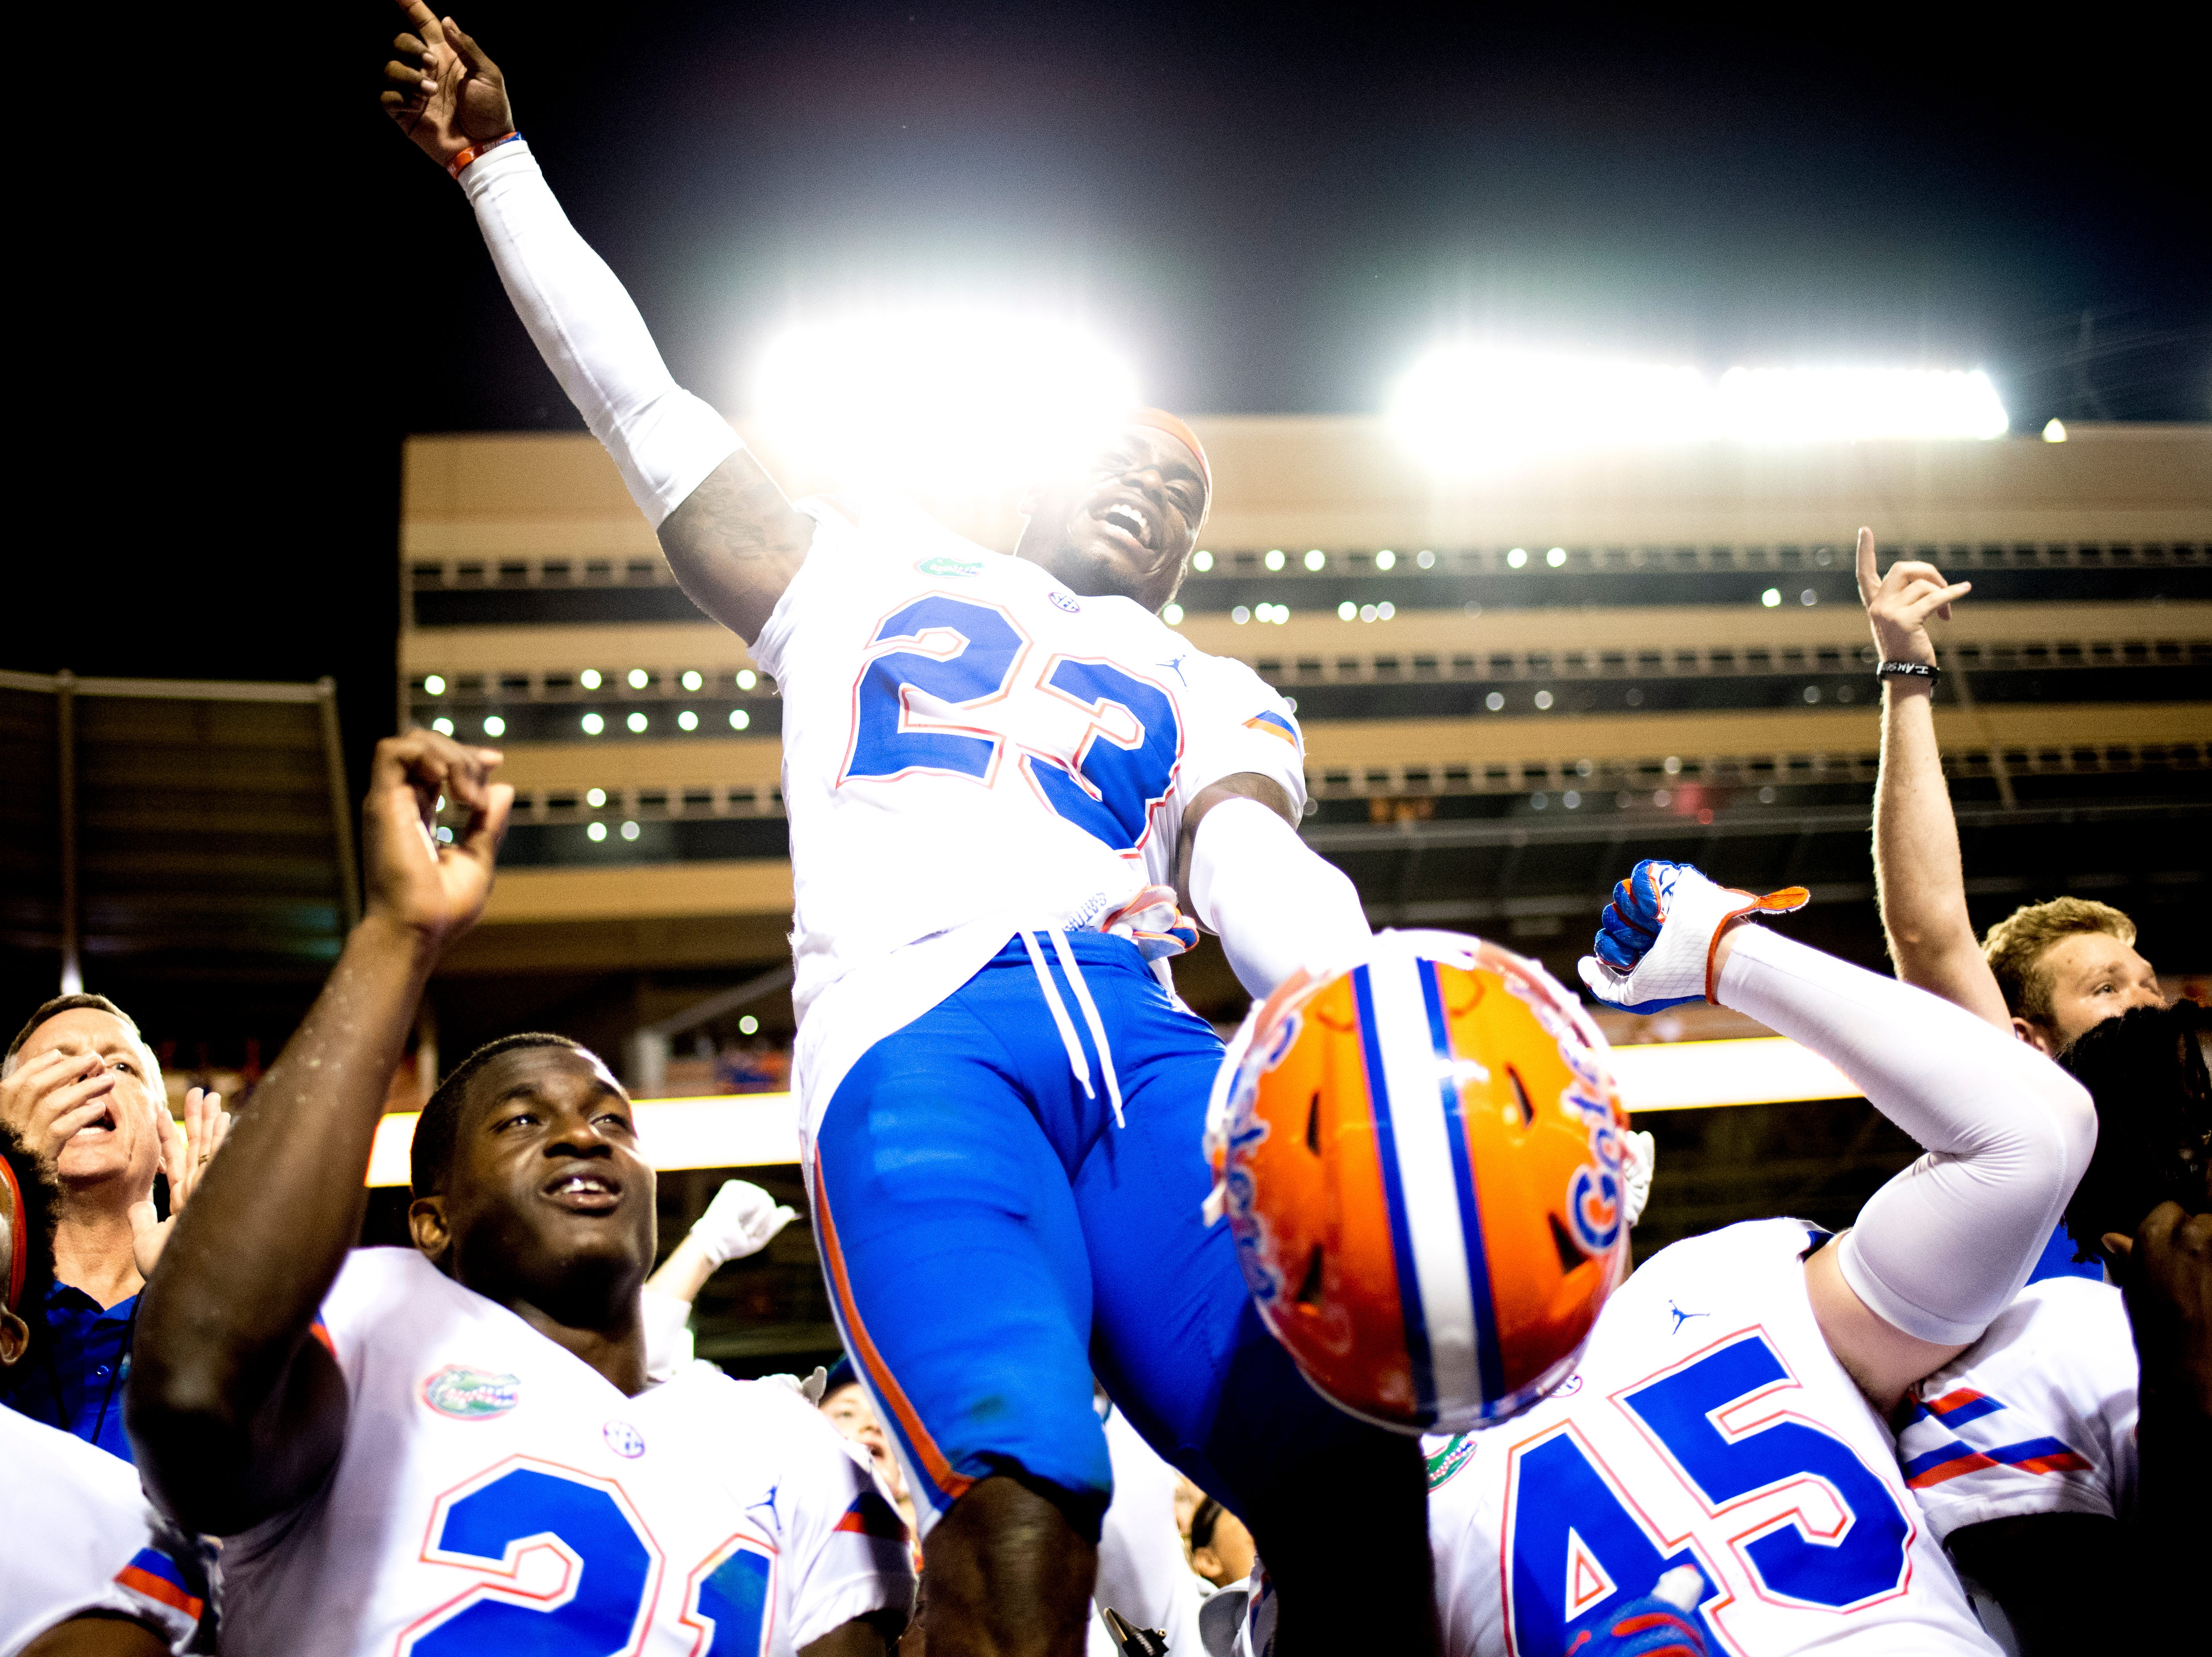 Florida defensive back Chauncey Gardner-Johnson (23) celebrates with team mates during a game between Tennessee and Florida at Neyland Stadium in Knoxville, Tennessee on Saturday, September 22, 2018.